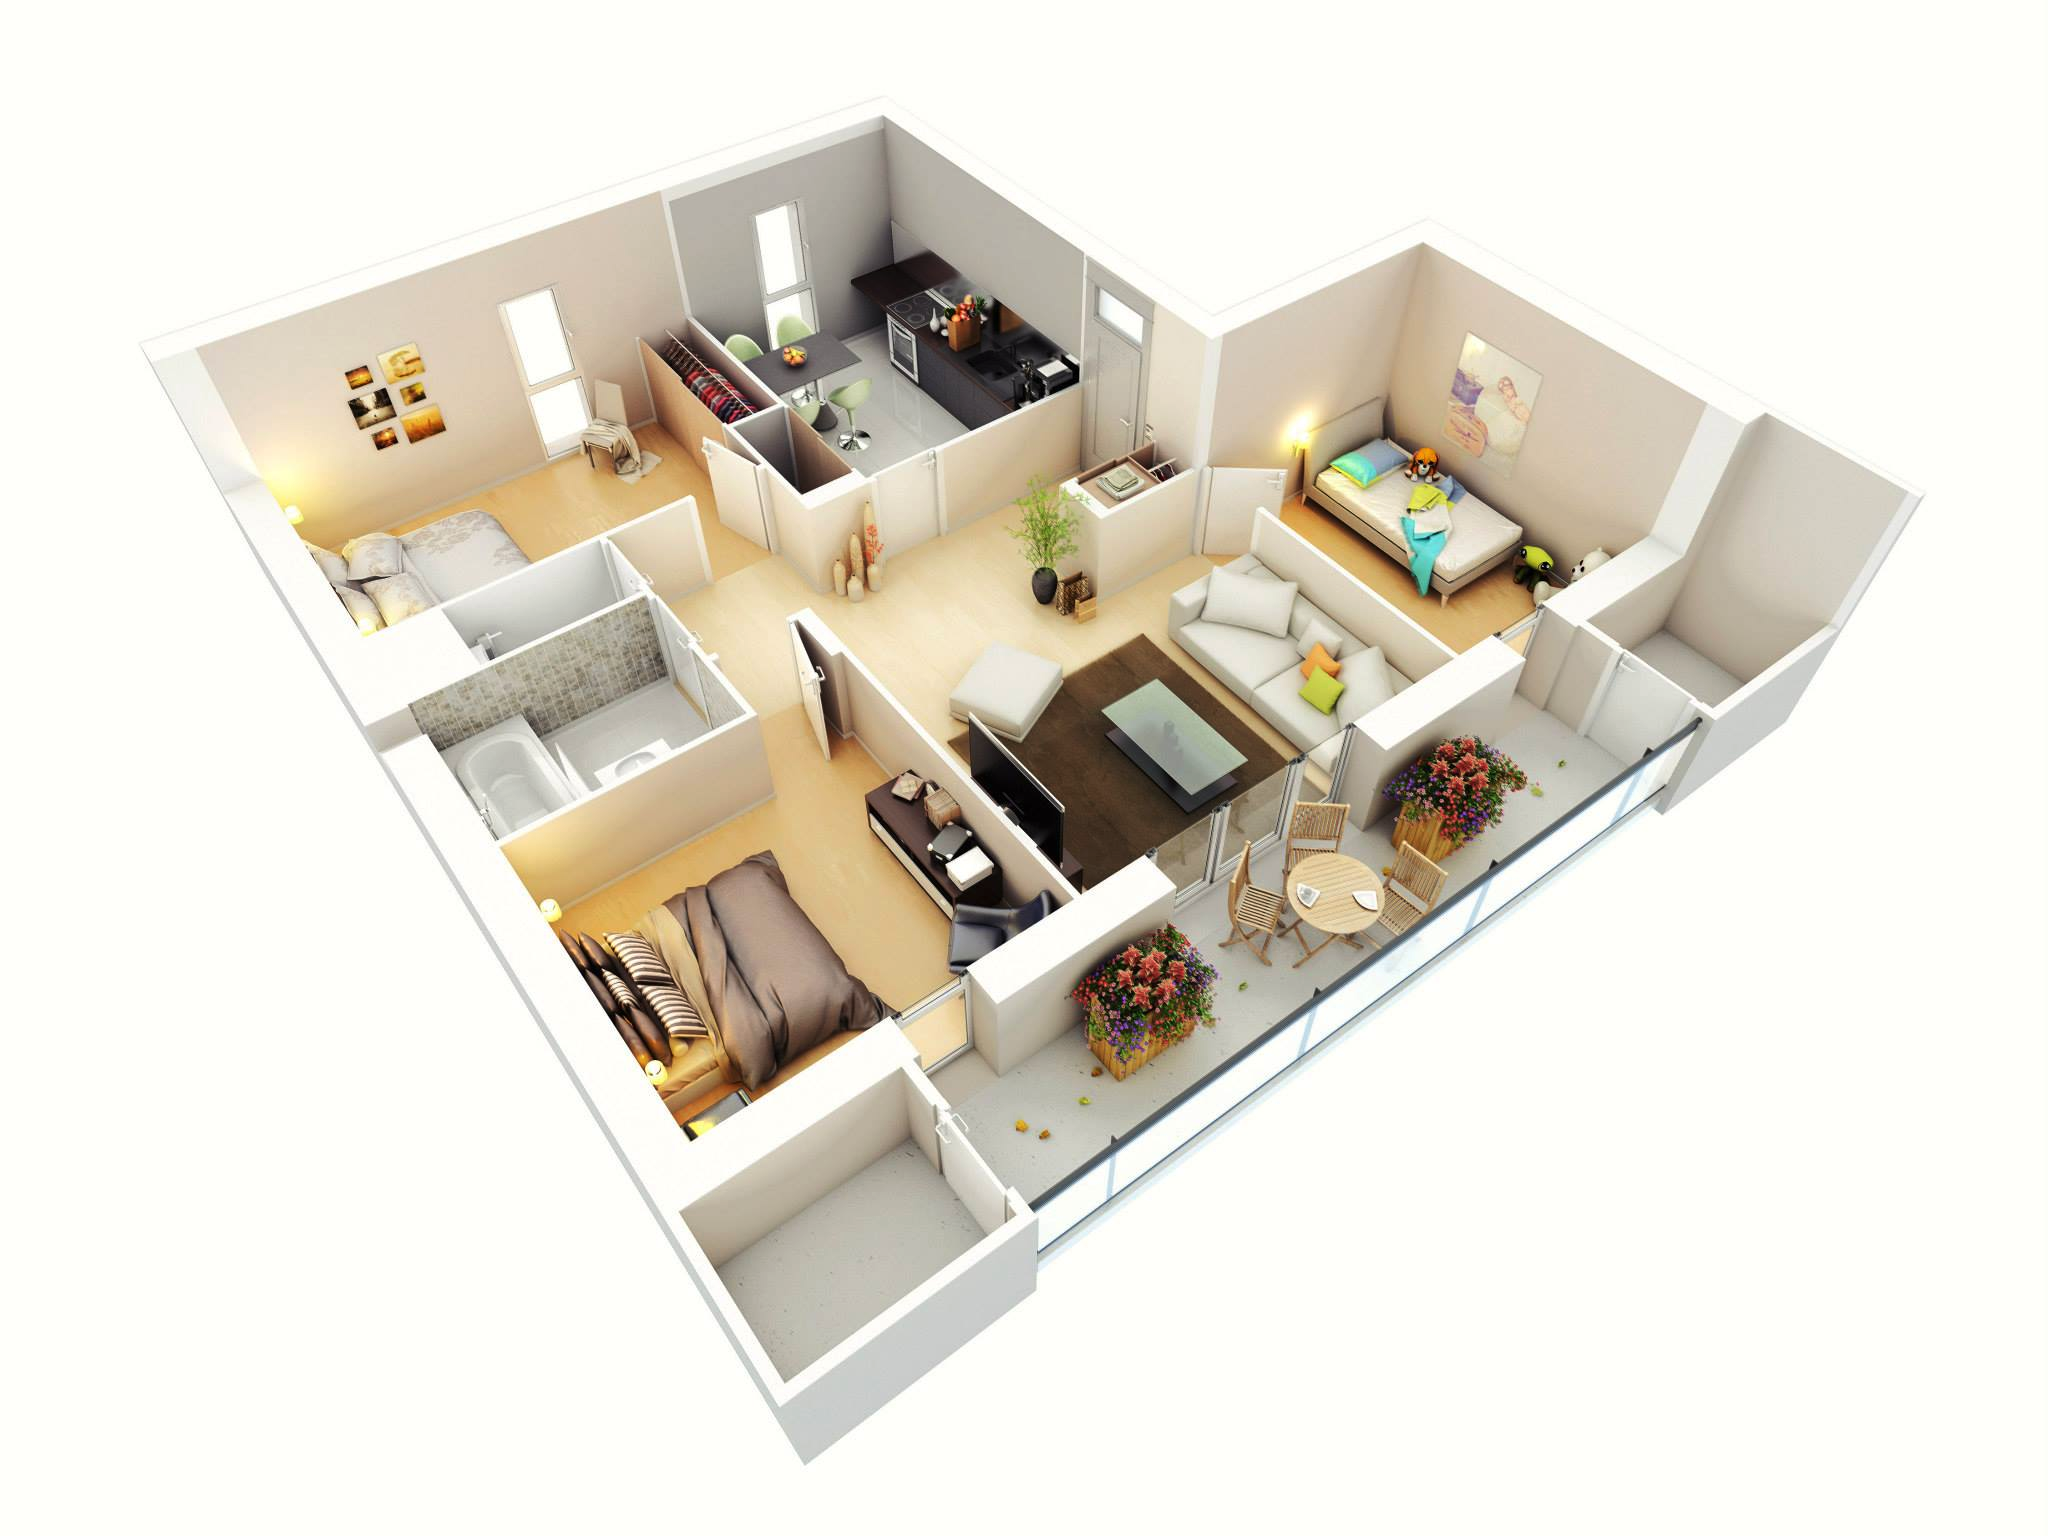 Architecture Design 3d pleasing 80+ interior design 3d floor plan design inspiration of